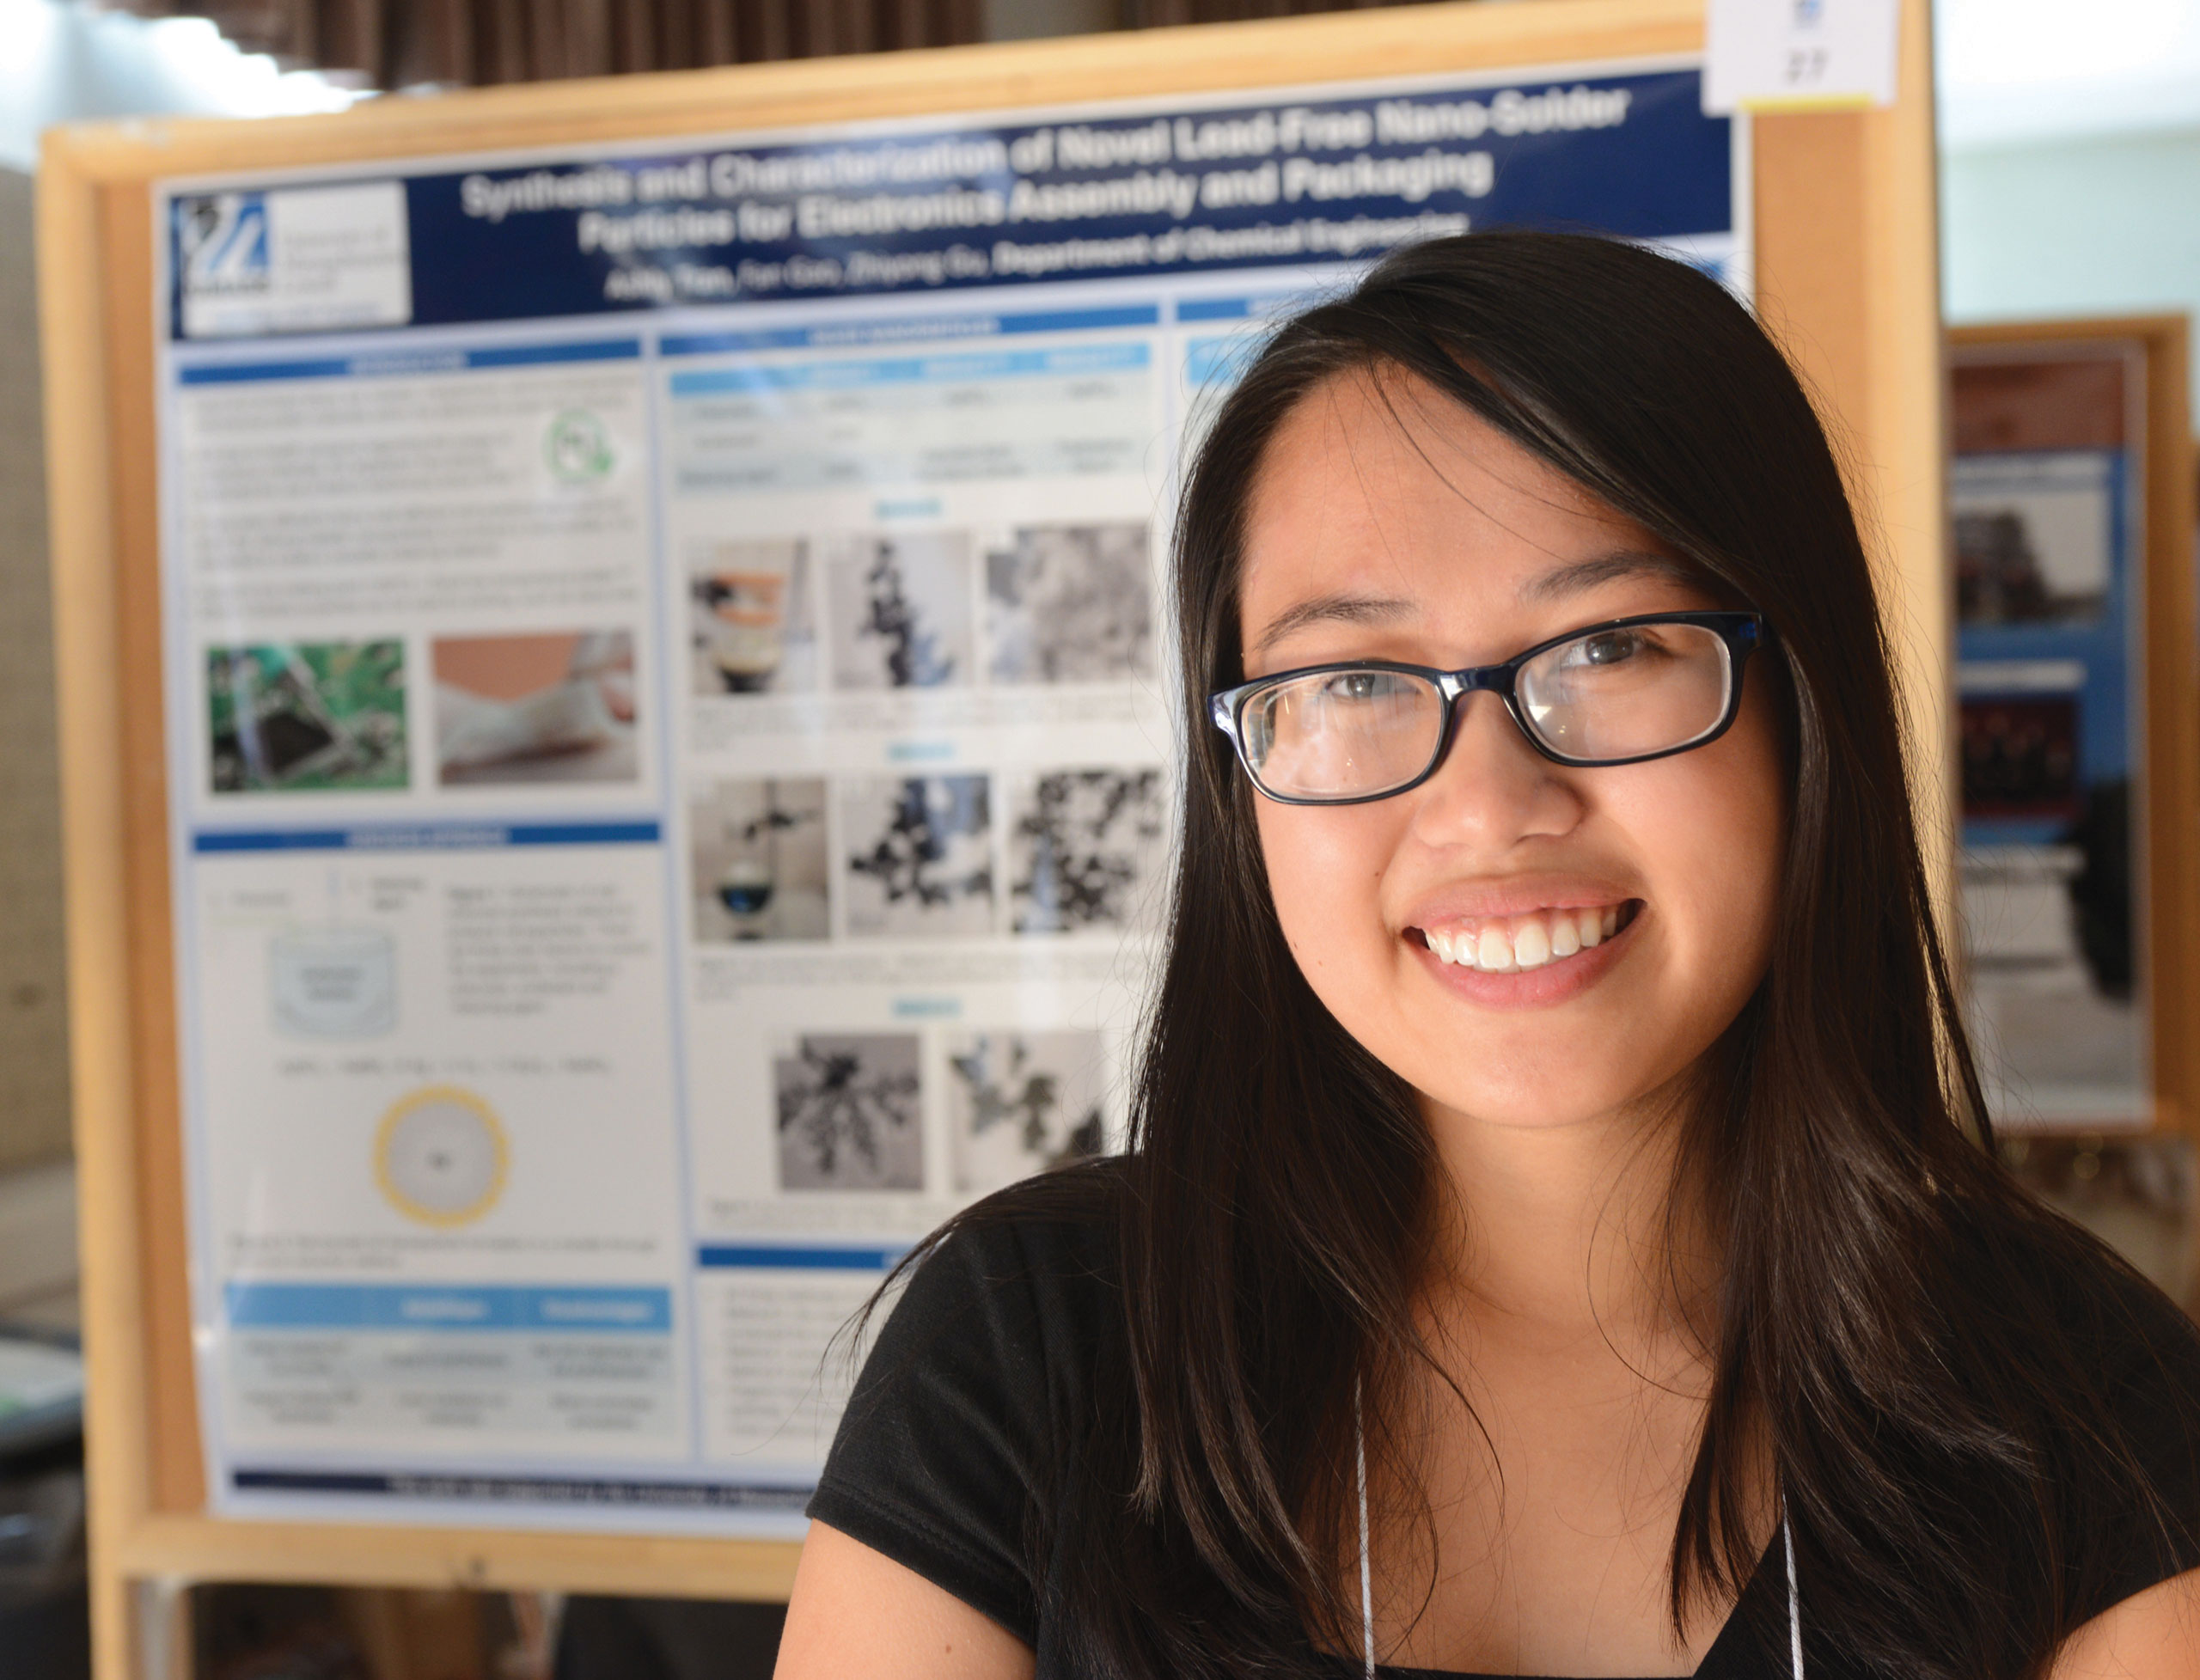 UMass Lowell Co-op Scholar Ashly Tran standing in front of research poster